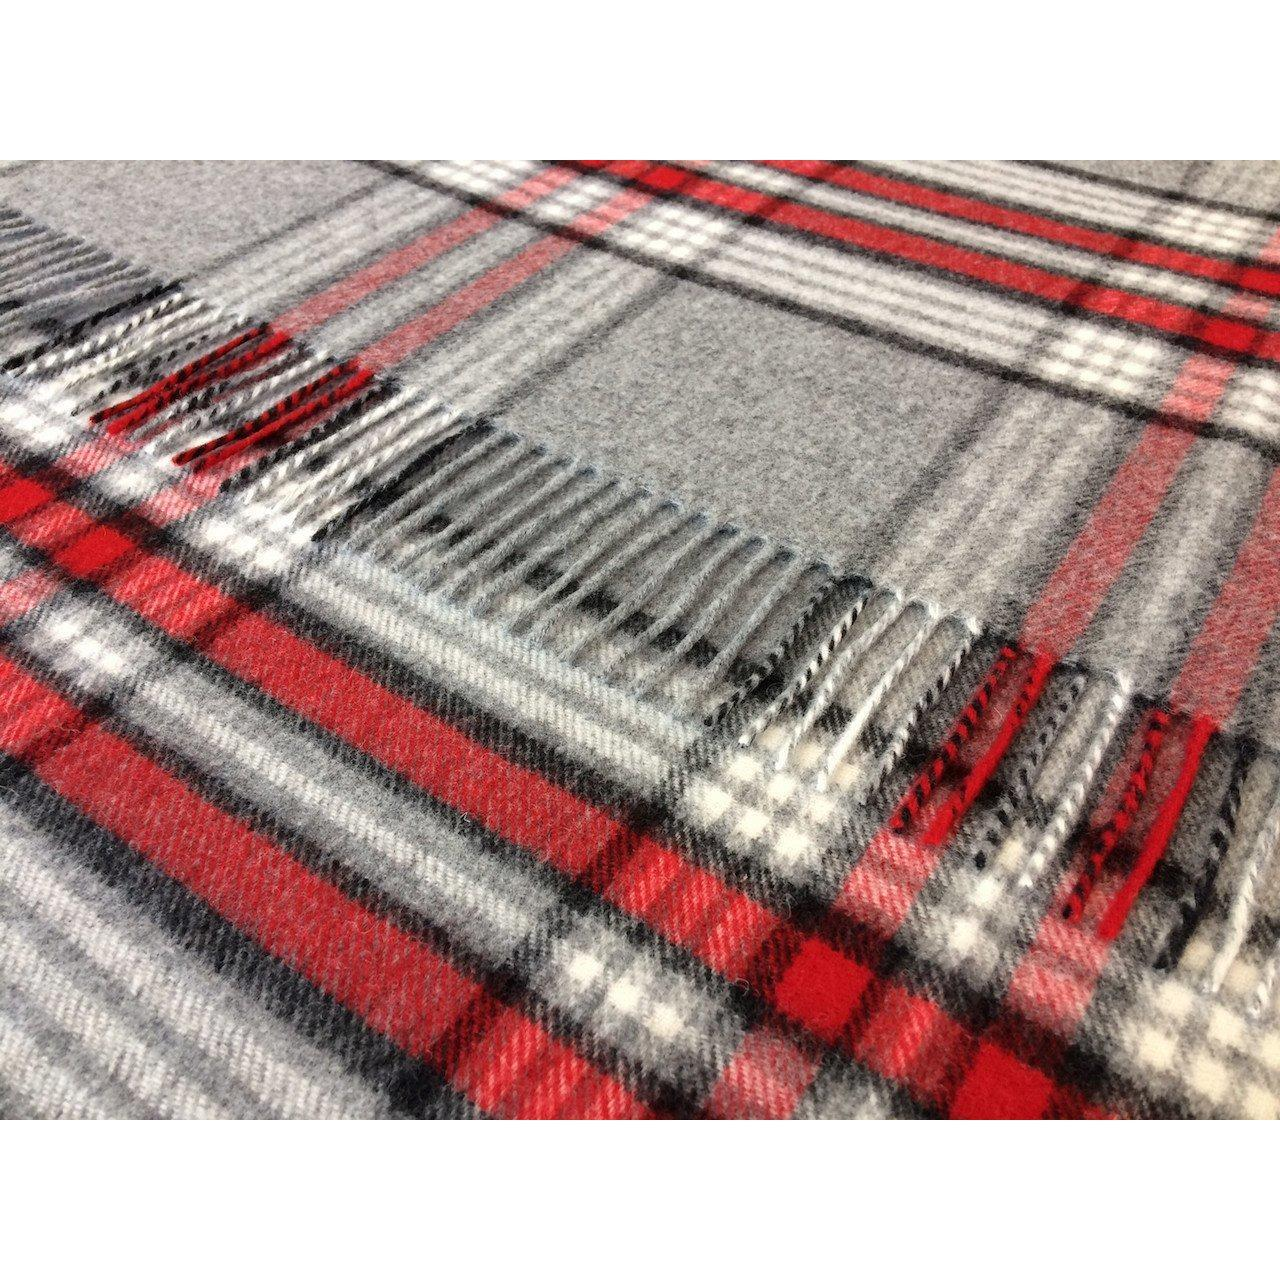 100% pure lambswool BRONTE sofa throw blanket rug - RED & GREY CHECK  T0104/B02 by Bronte